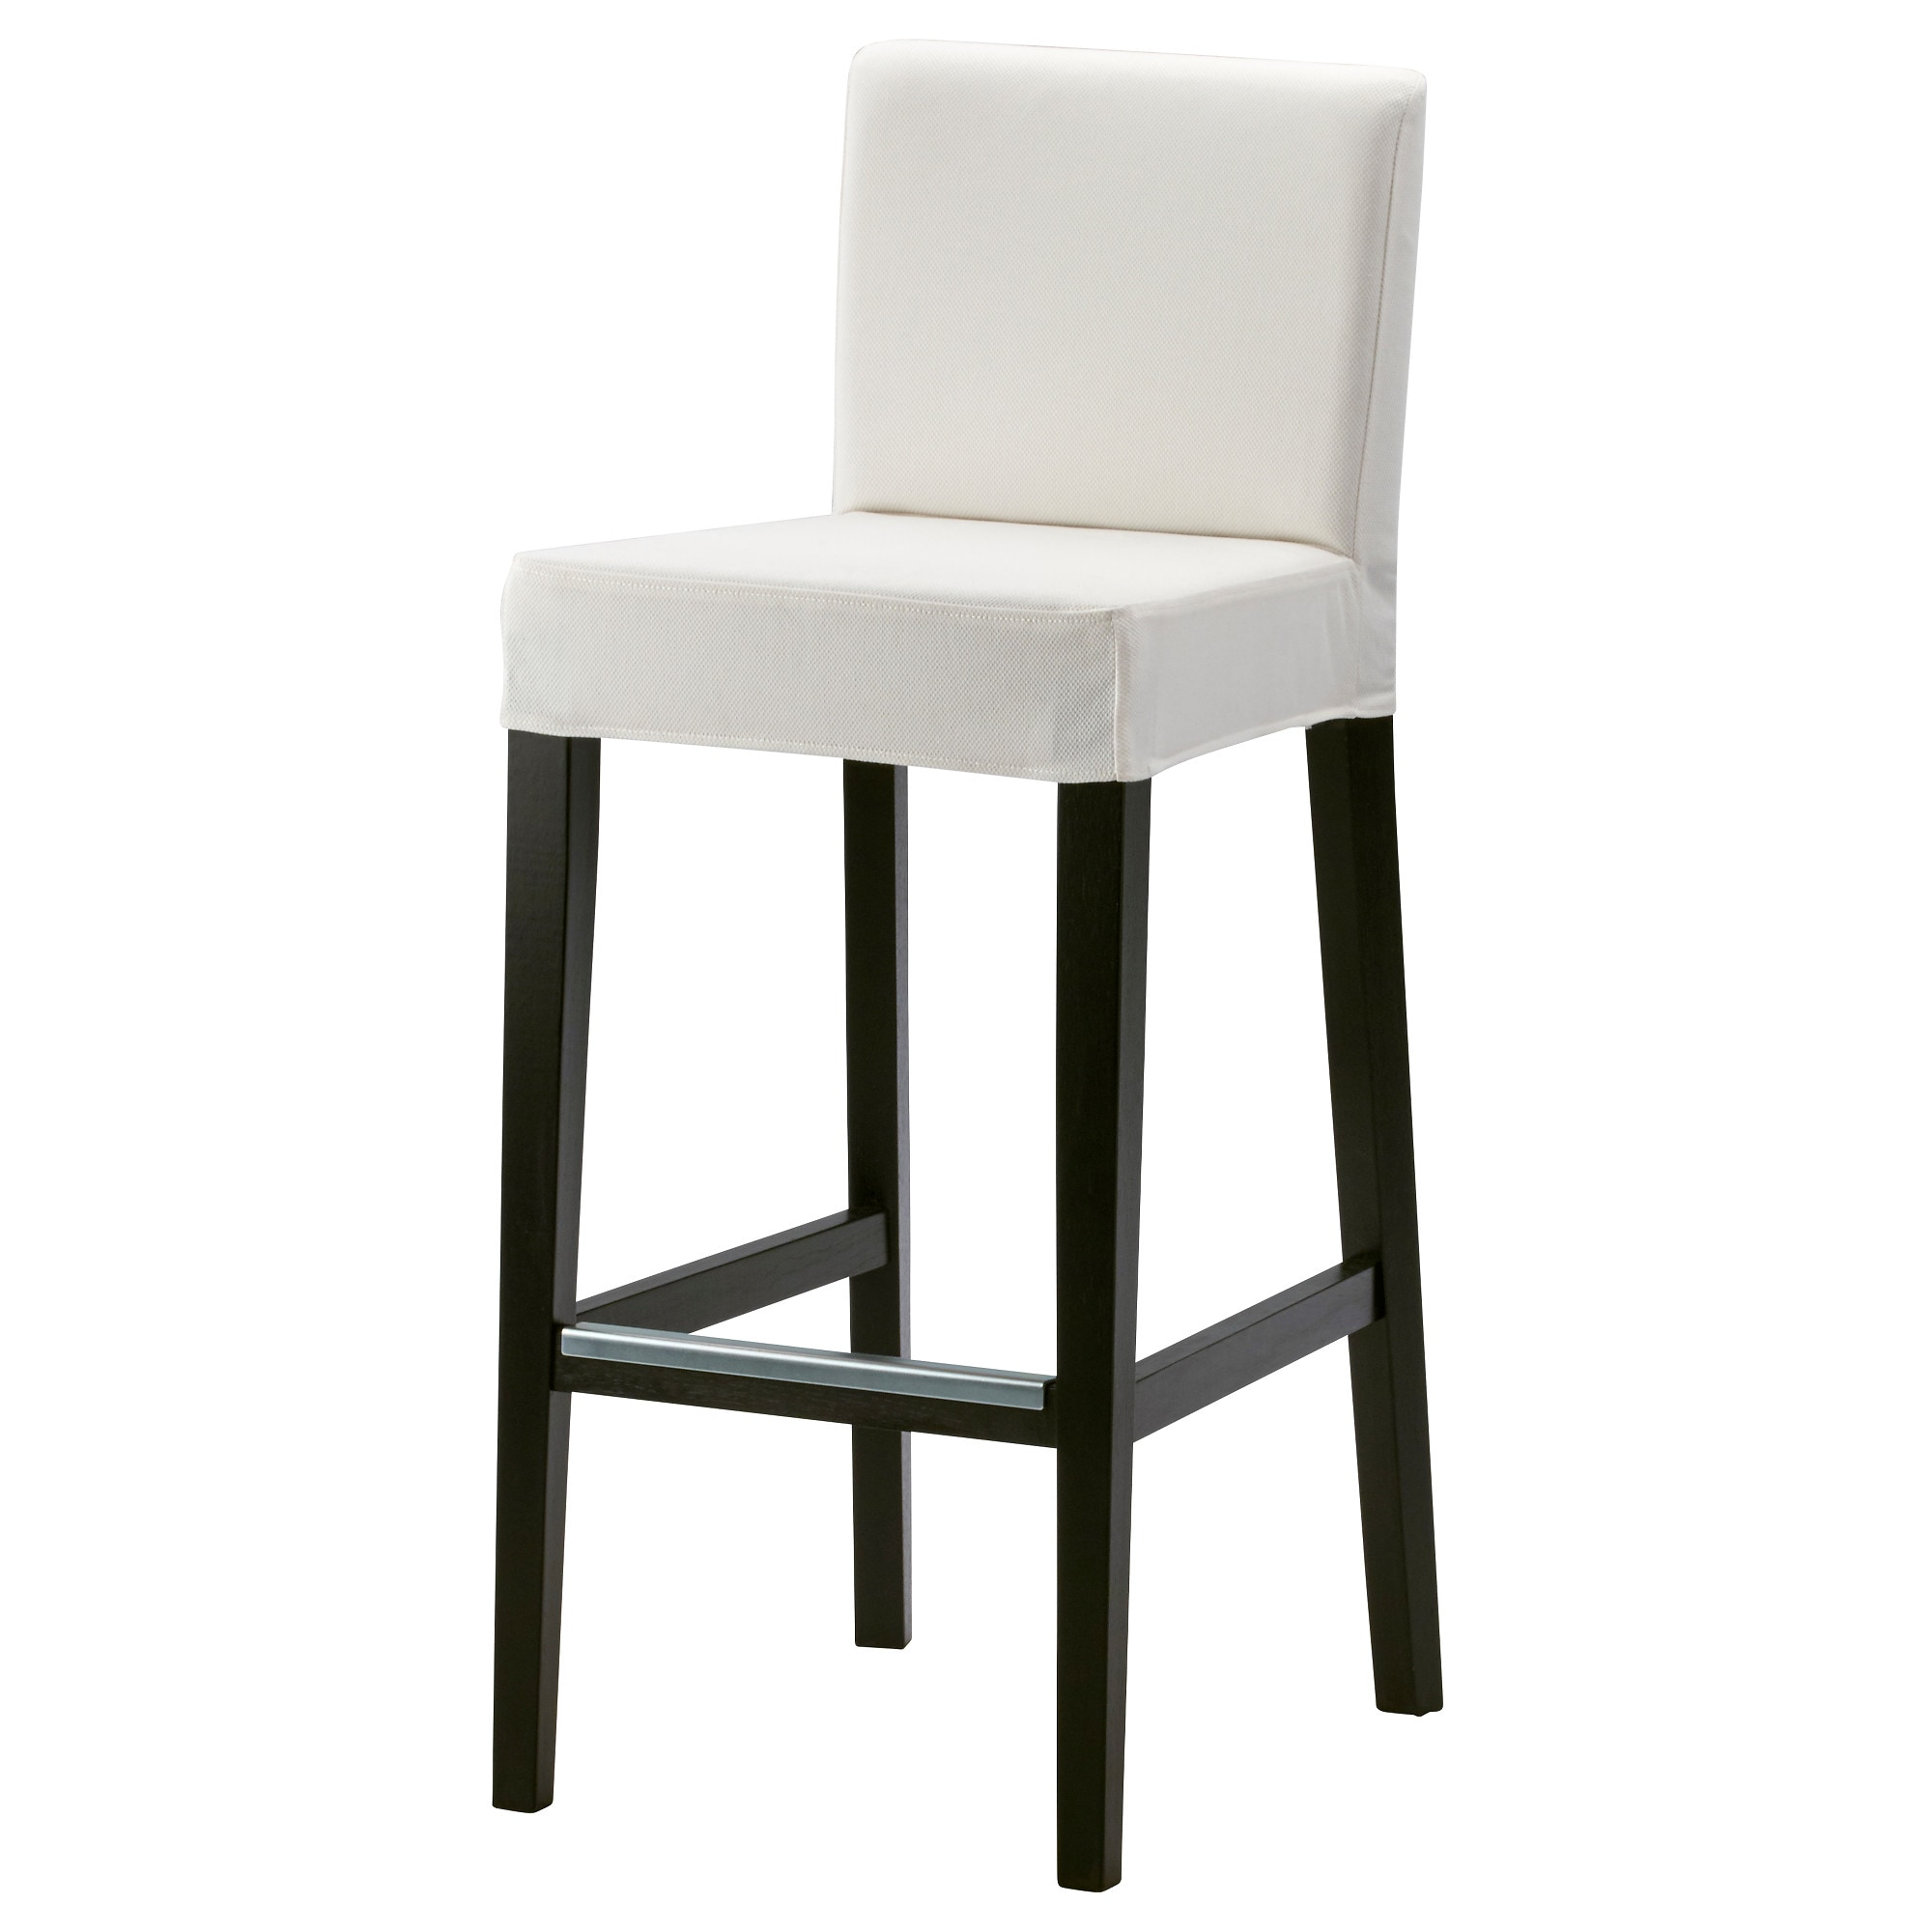 henriksdal bar stool with backrest brownblack grsbo white tested for 220